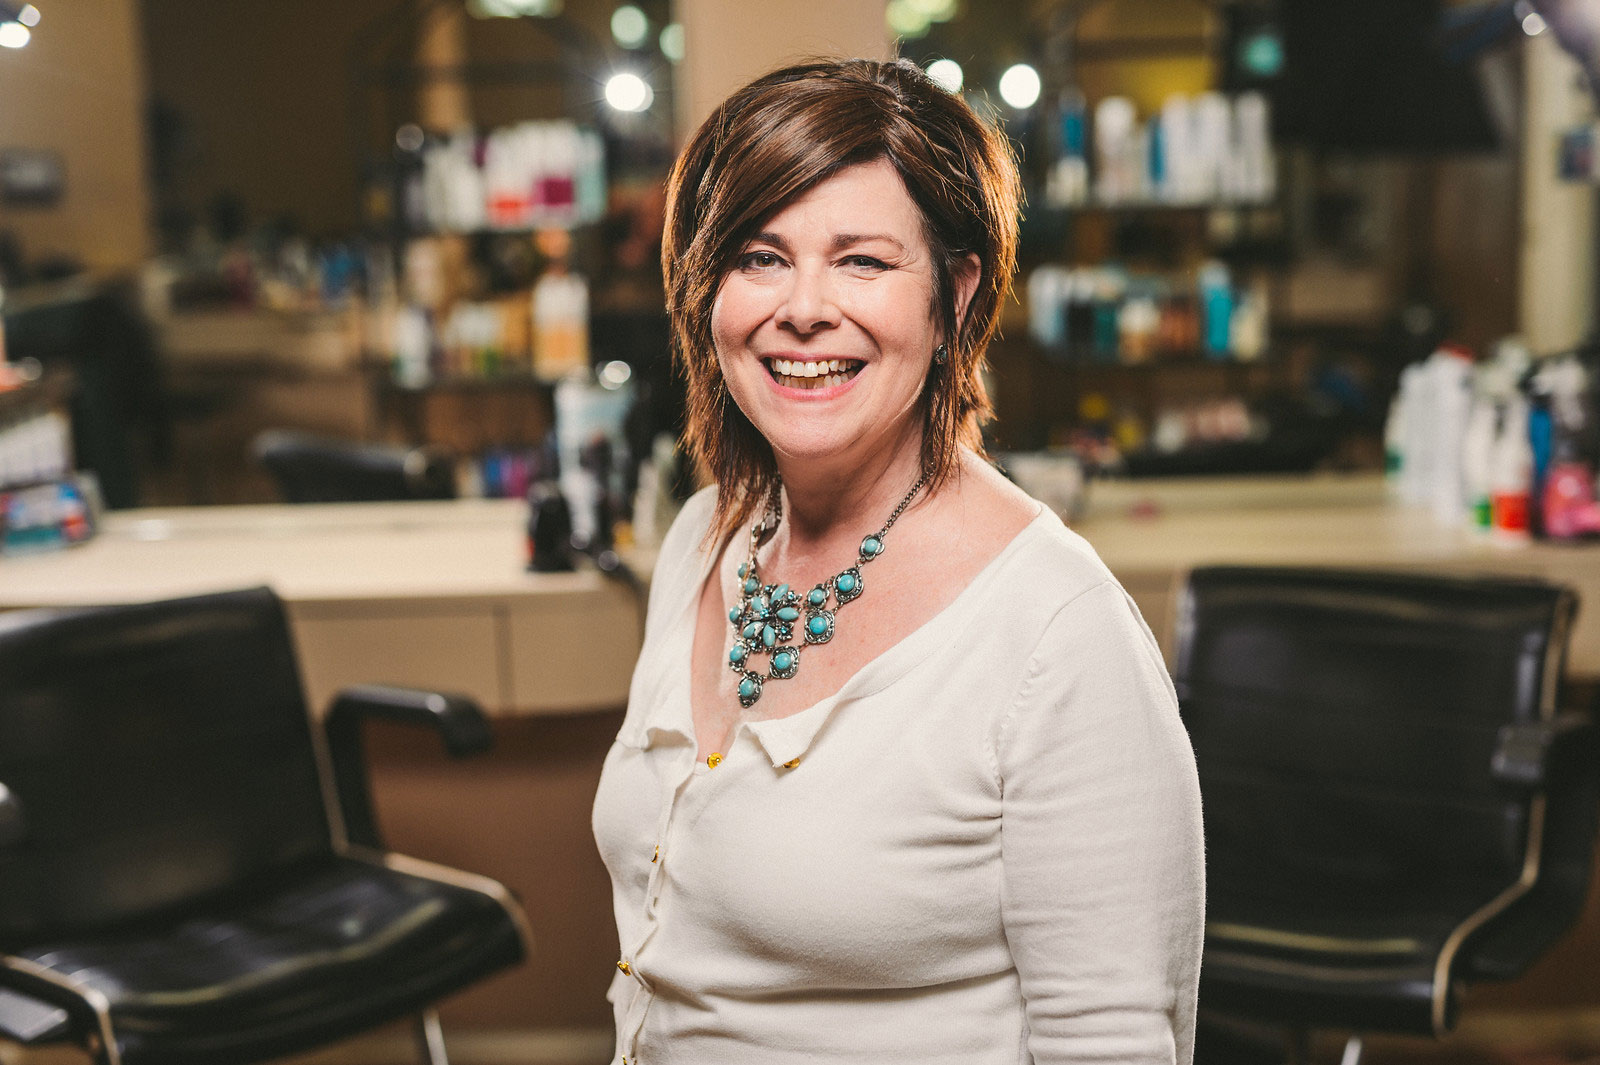 REV Hair Studio - Carol St. Leger